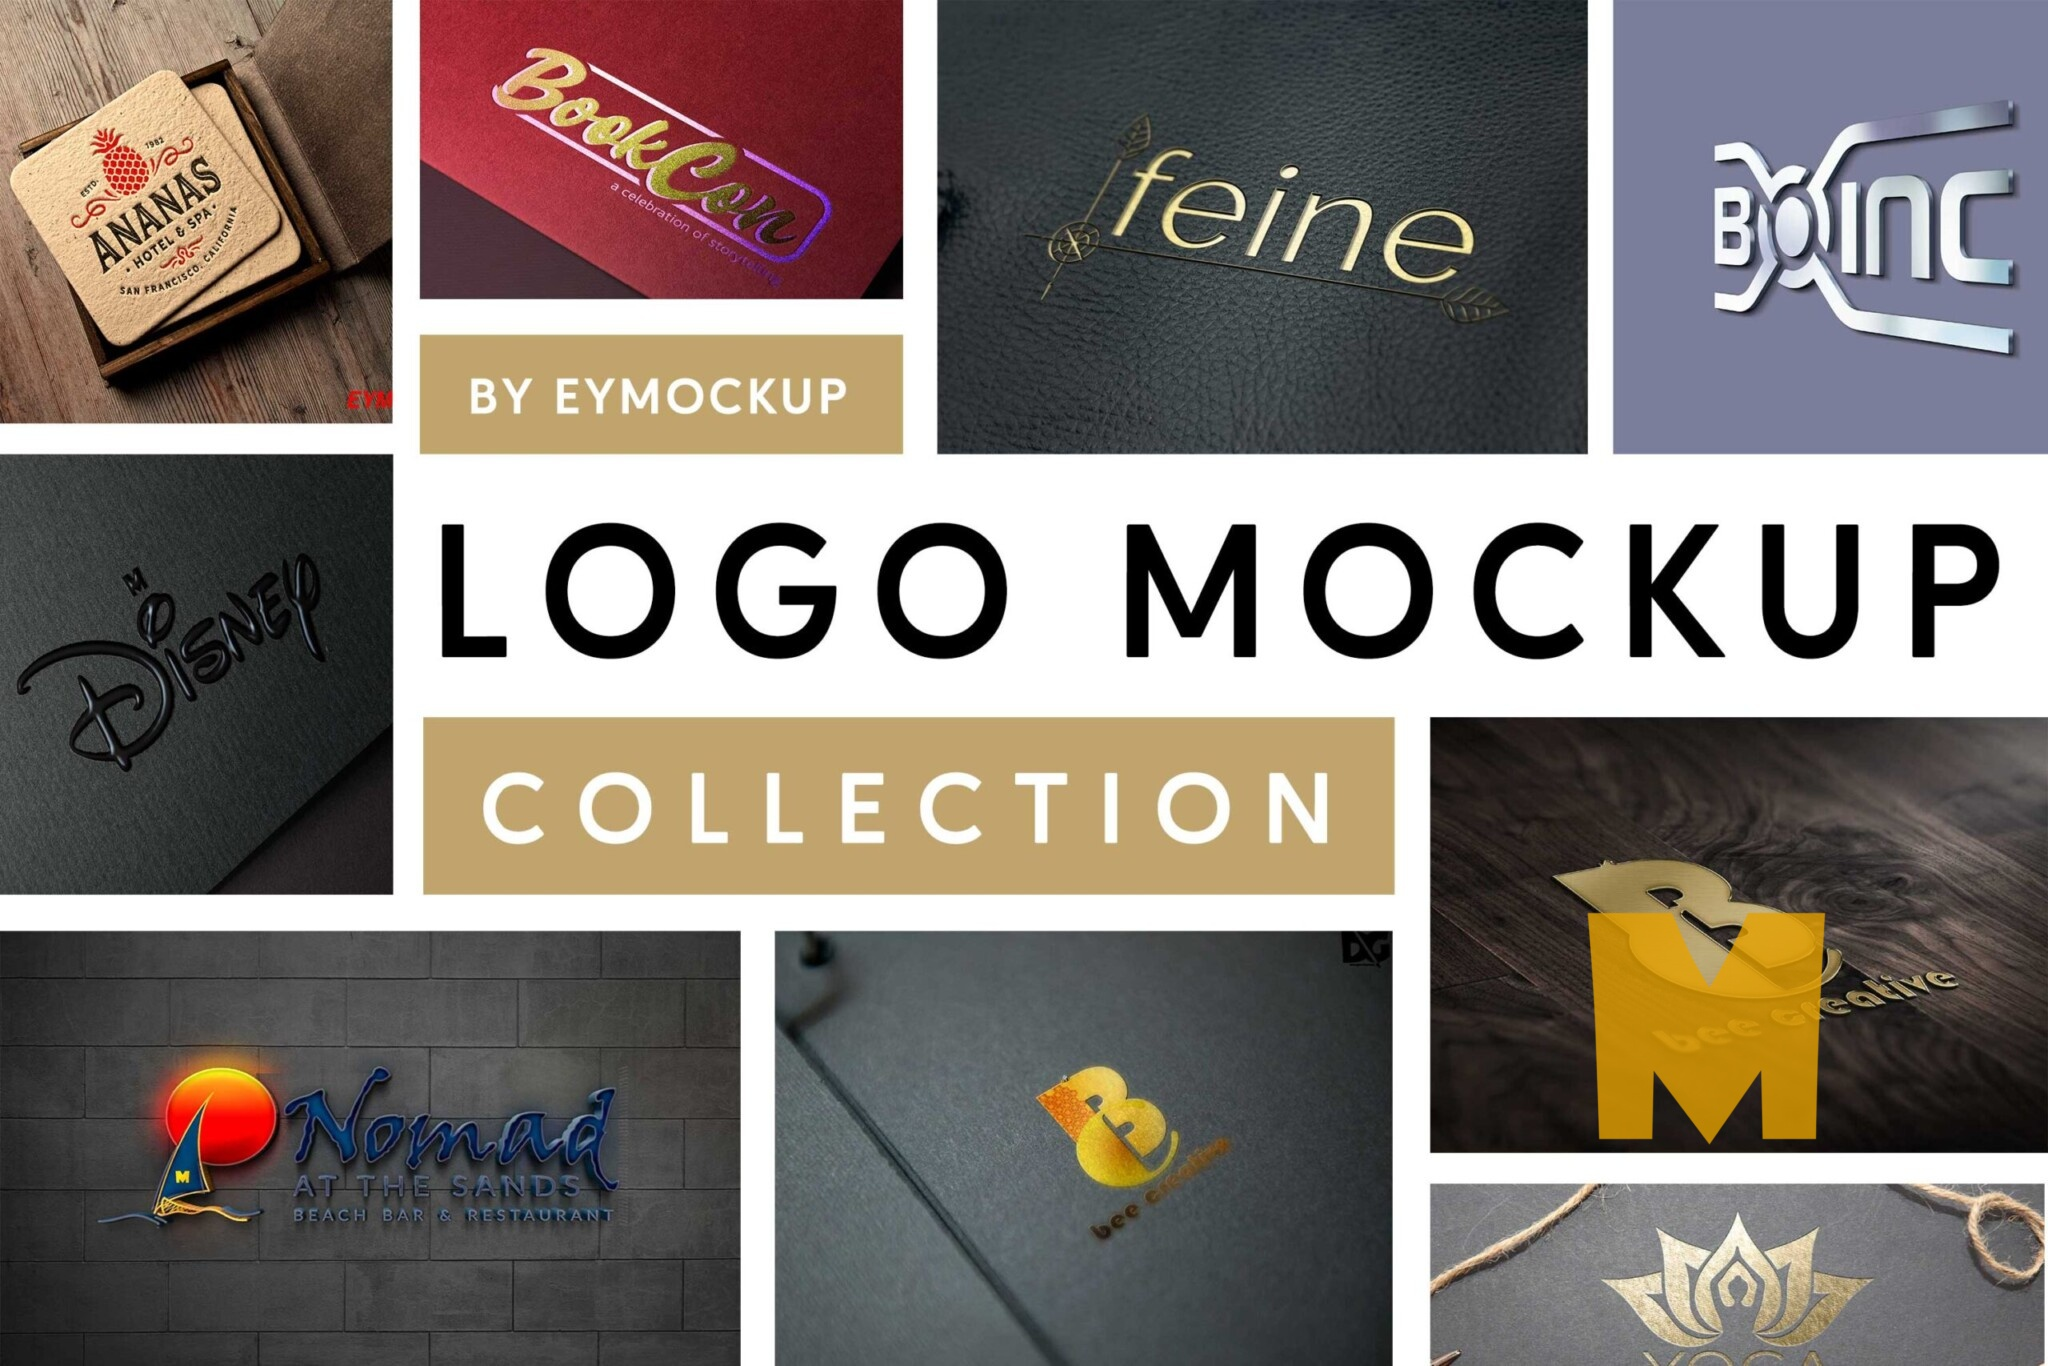 Catching Logo Mockups